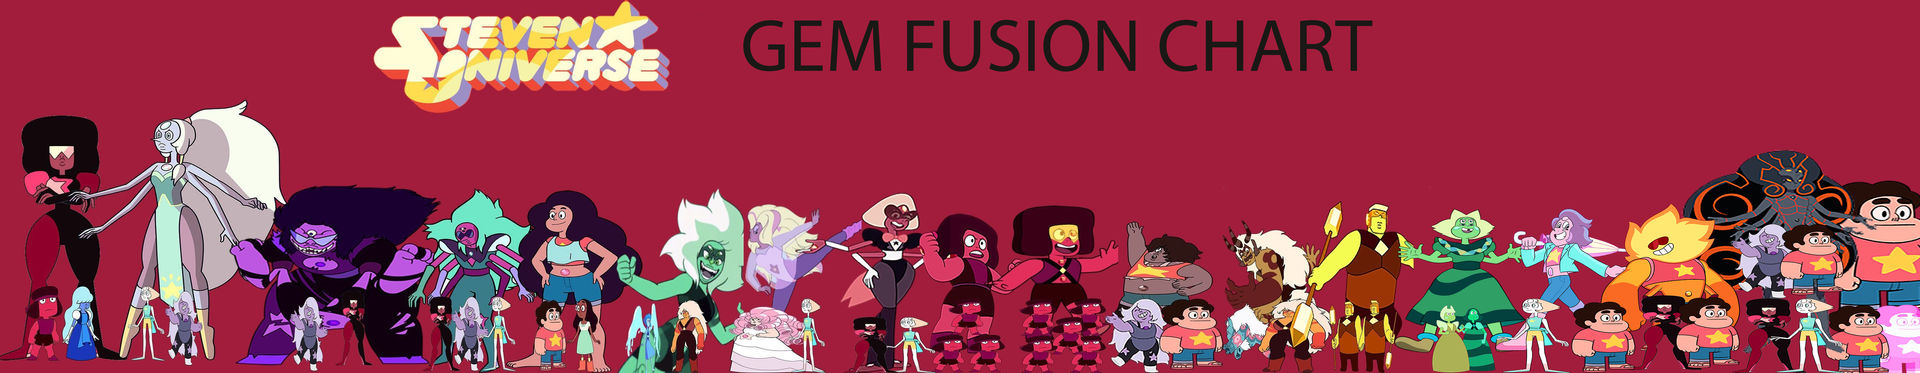 Gem Fusion Update (THIS TOOK ALL NIGHT!)